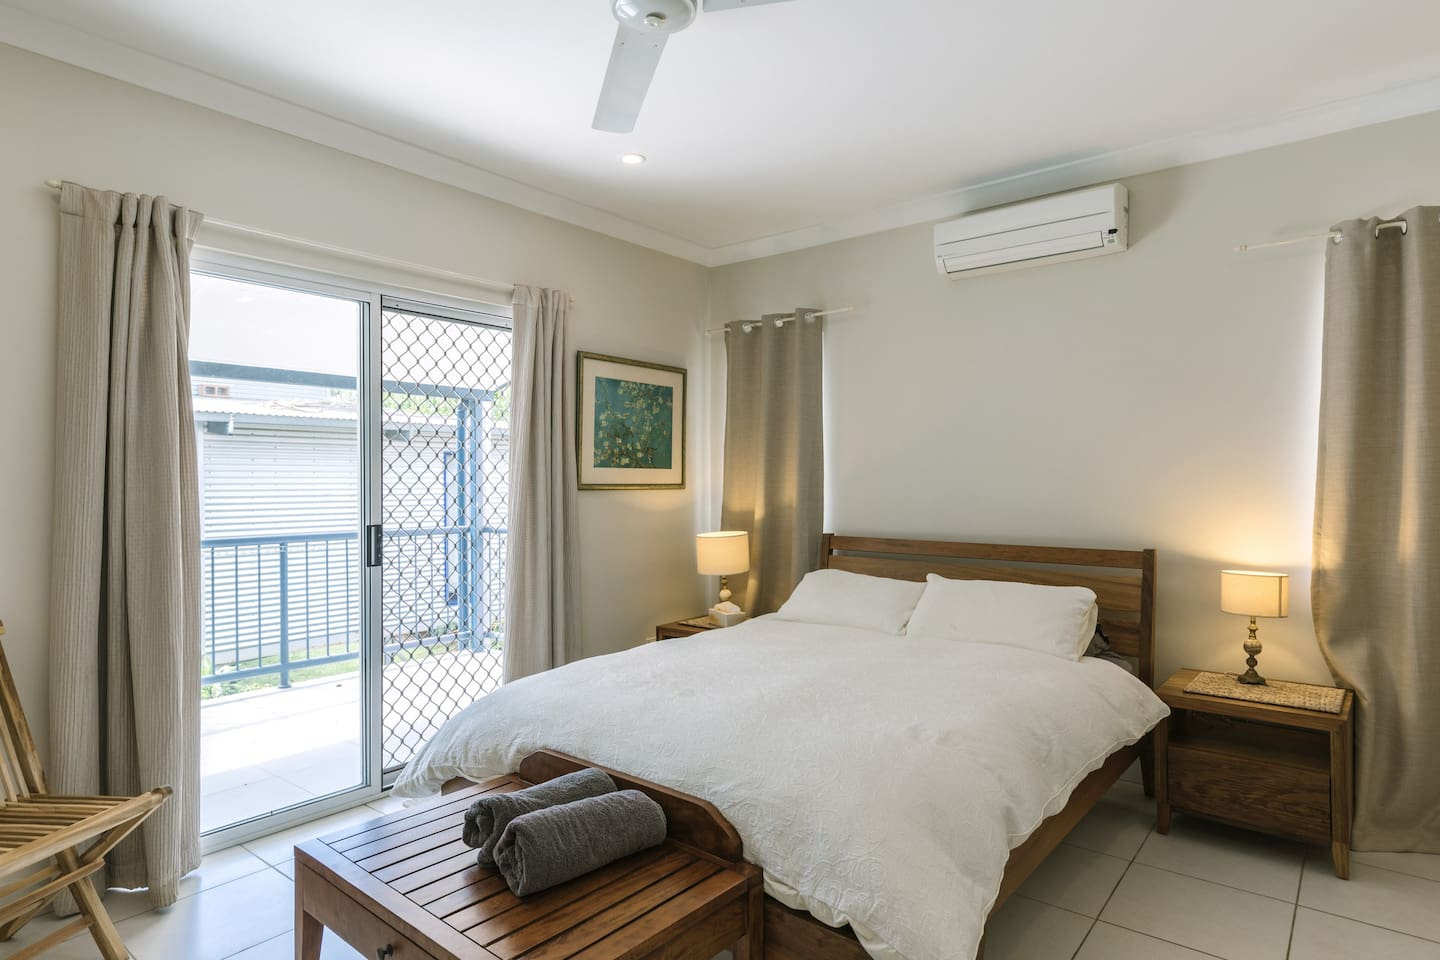 The large and bright master bedroom has an ensuite bathroom, built-in robes and a private balcony. Beach towels are also provided.